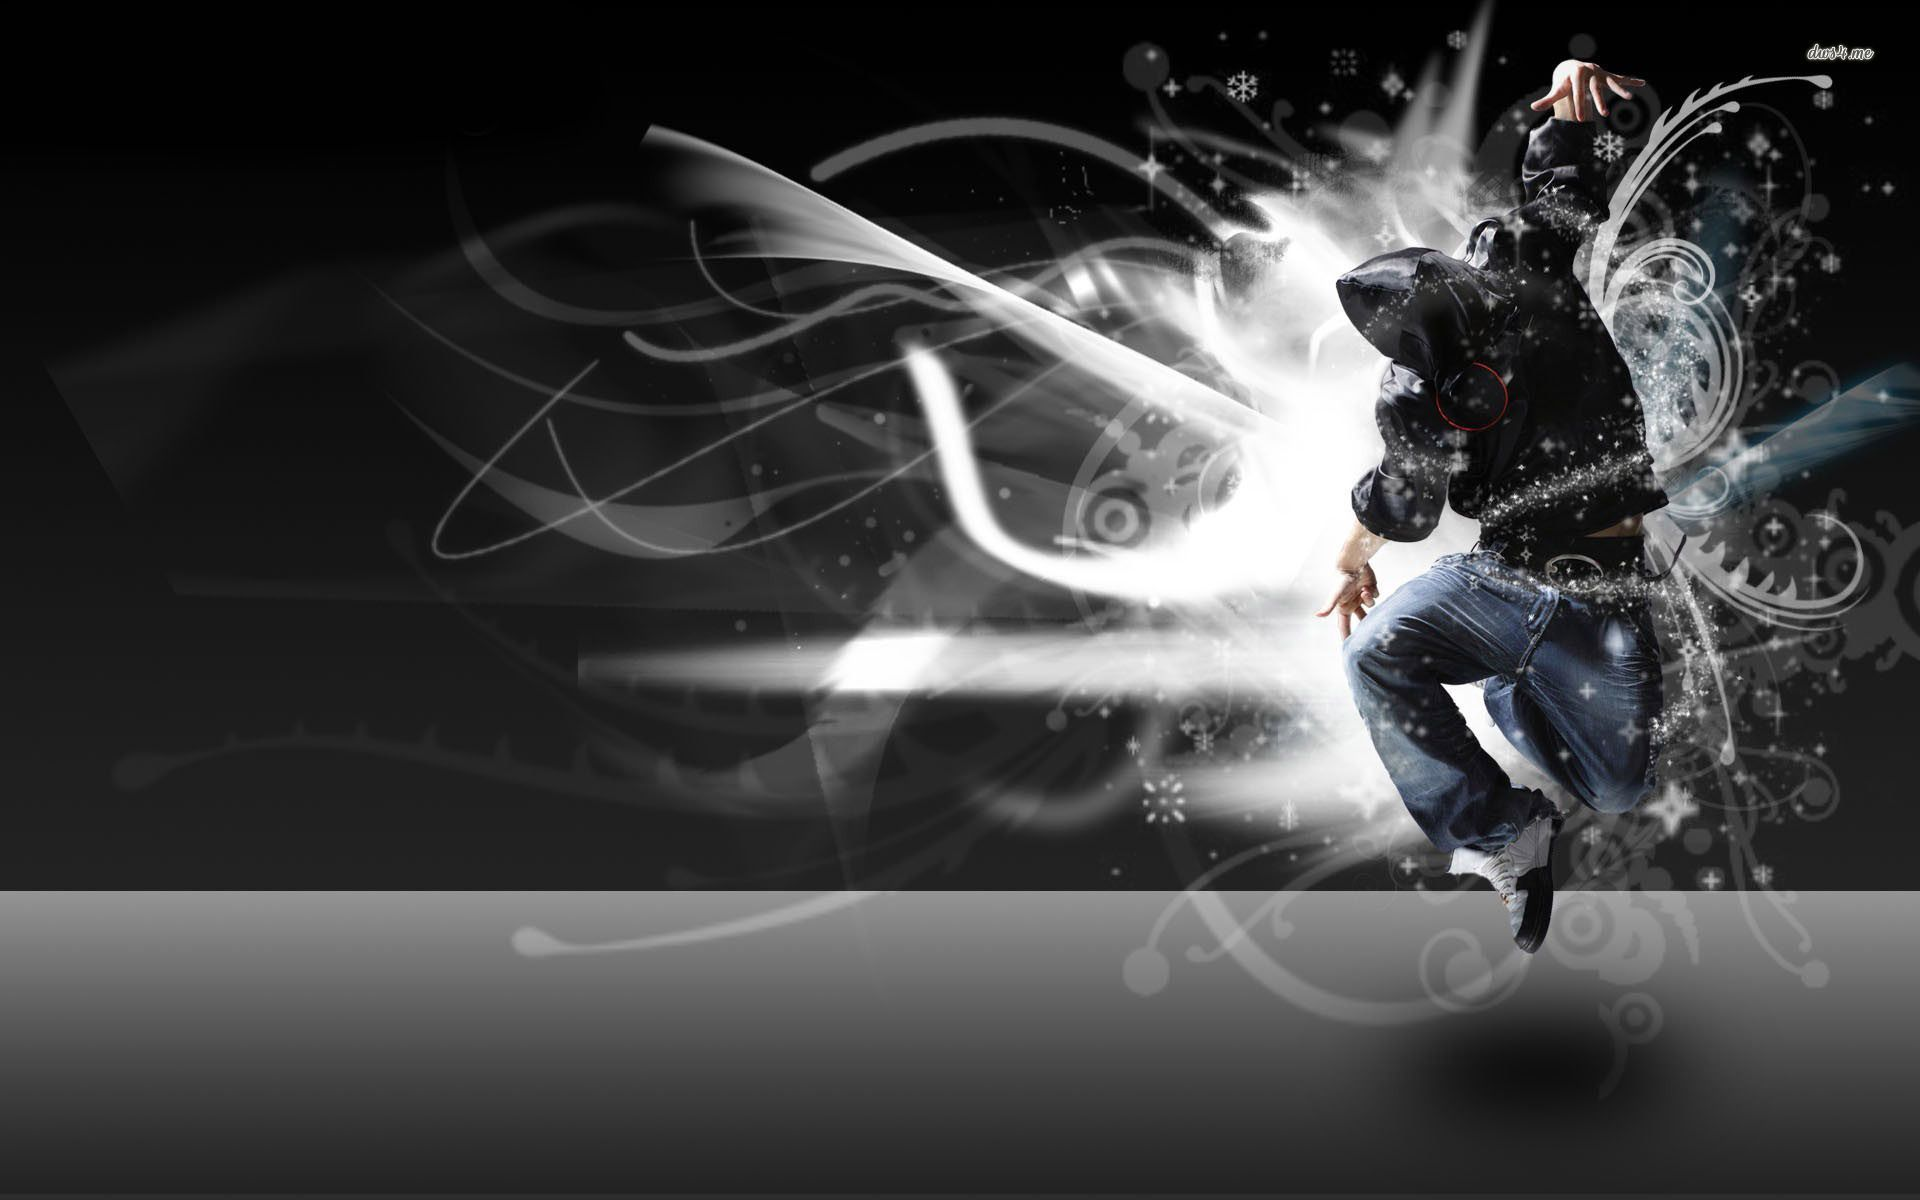 Dance wallpapers best wallpapers hd wallpapers pinterest dance wallpapers for desktop dance backgrounds wallpapers voltagebd Choice Image